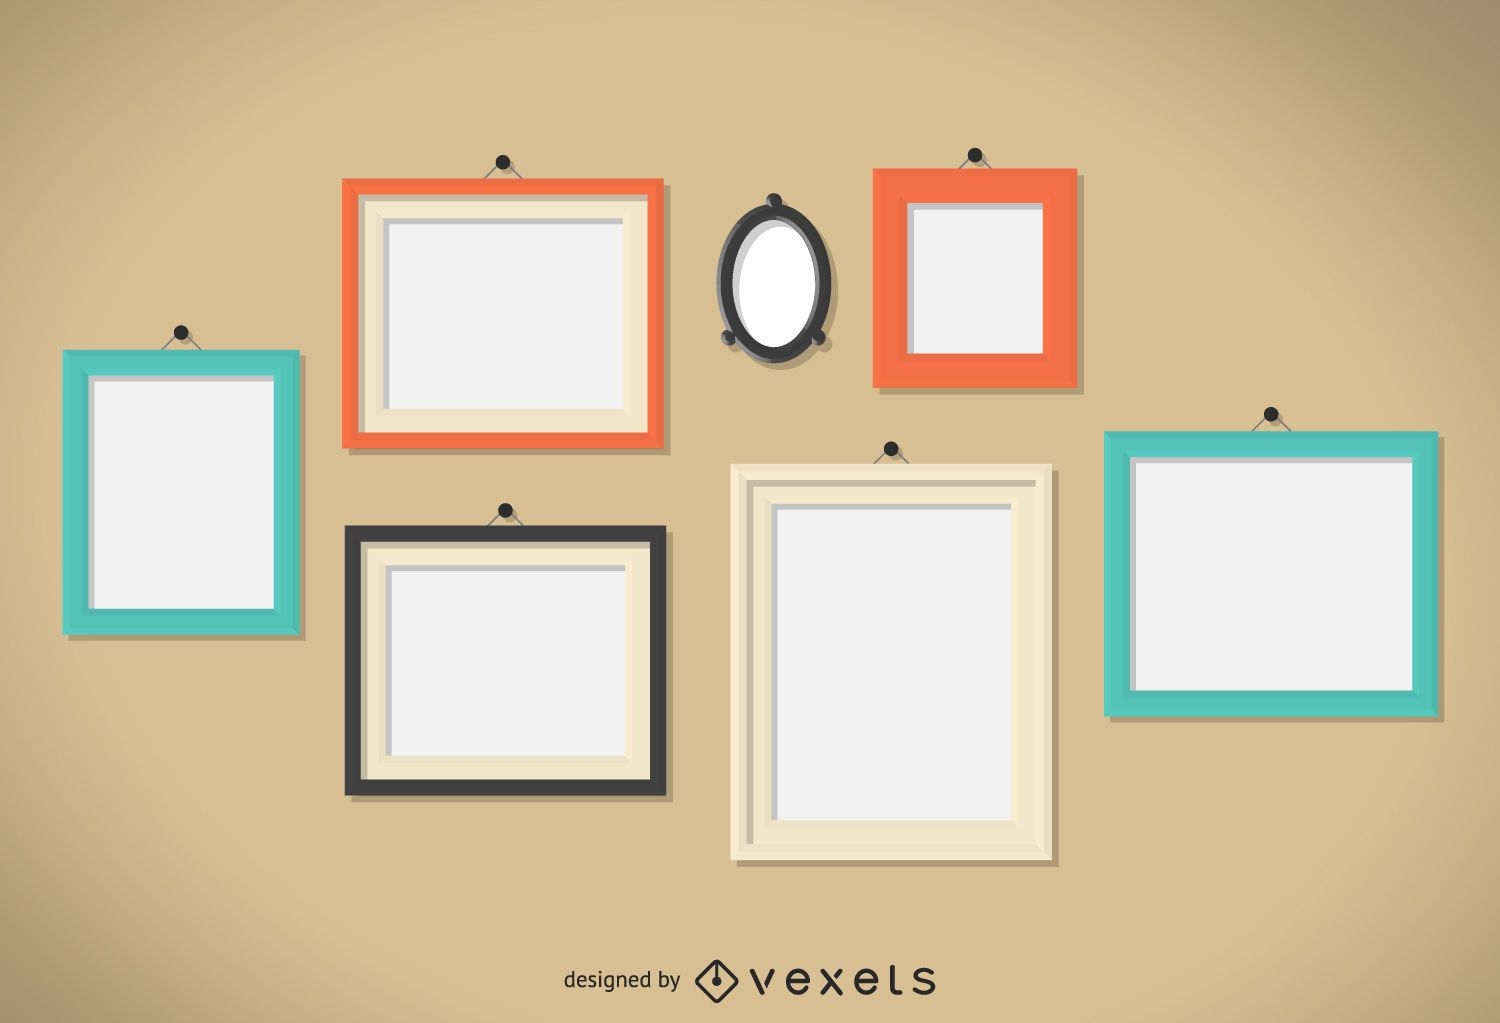 wall frames illustration set download large image 1559x1064px